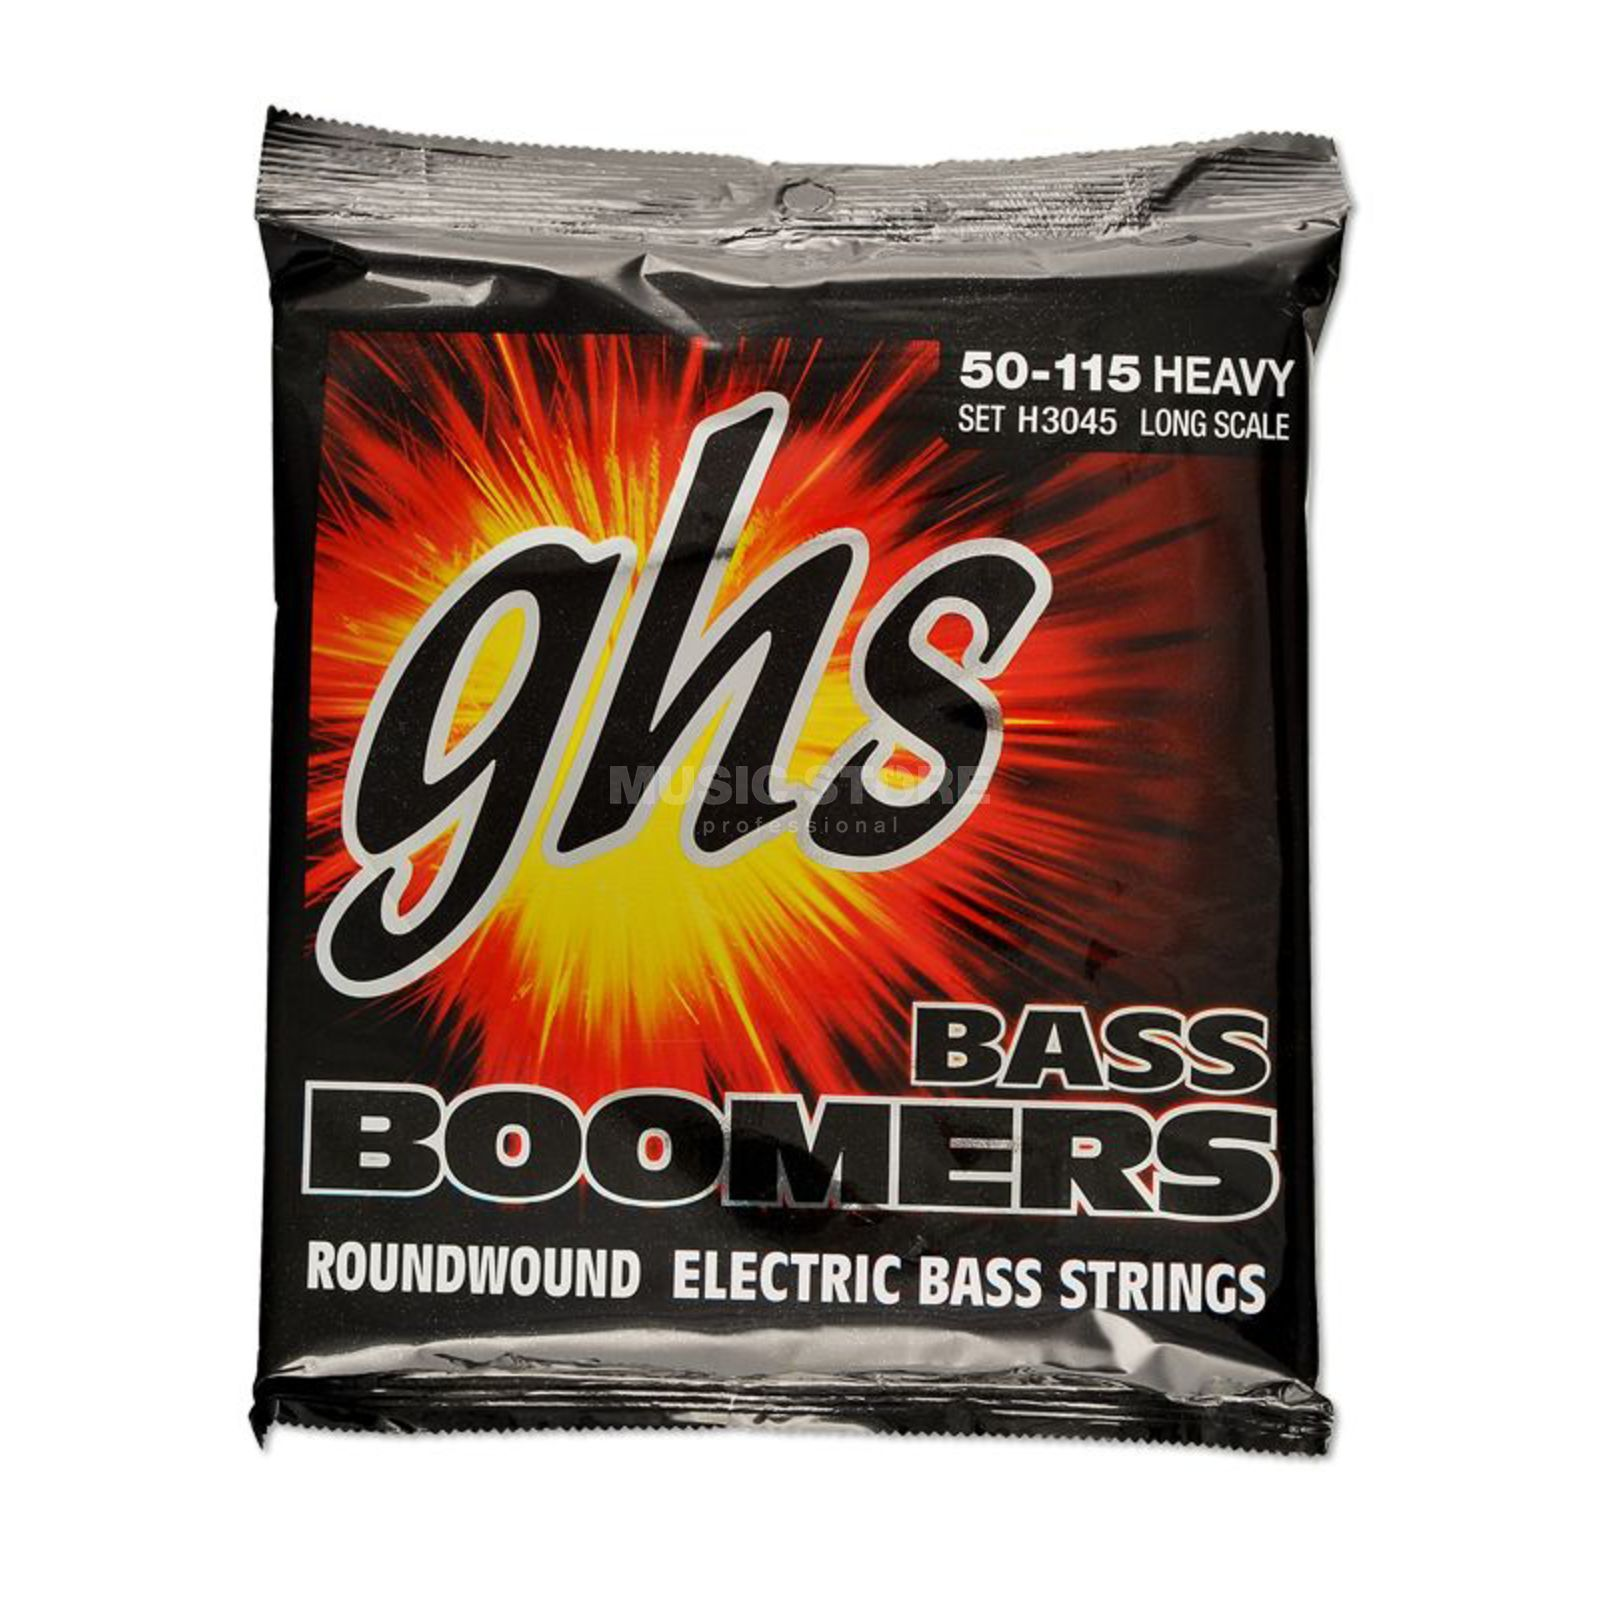 GHS E-Bass,4er,50-115,Boomers Roundwound Long Scale Изображение товара